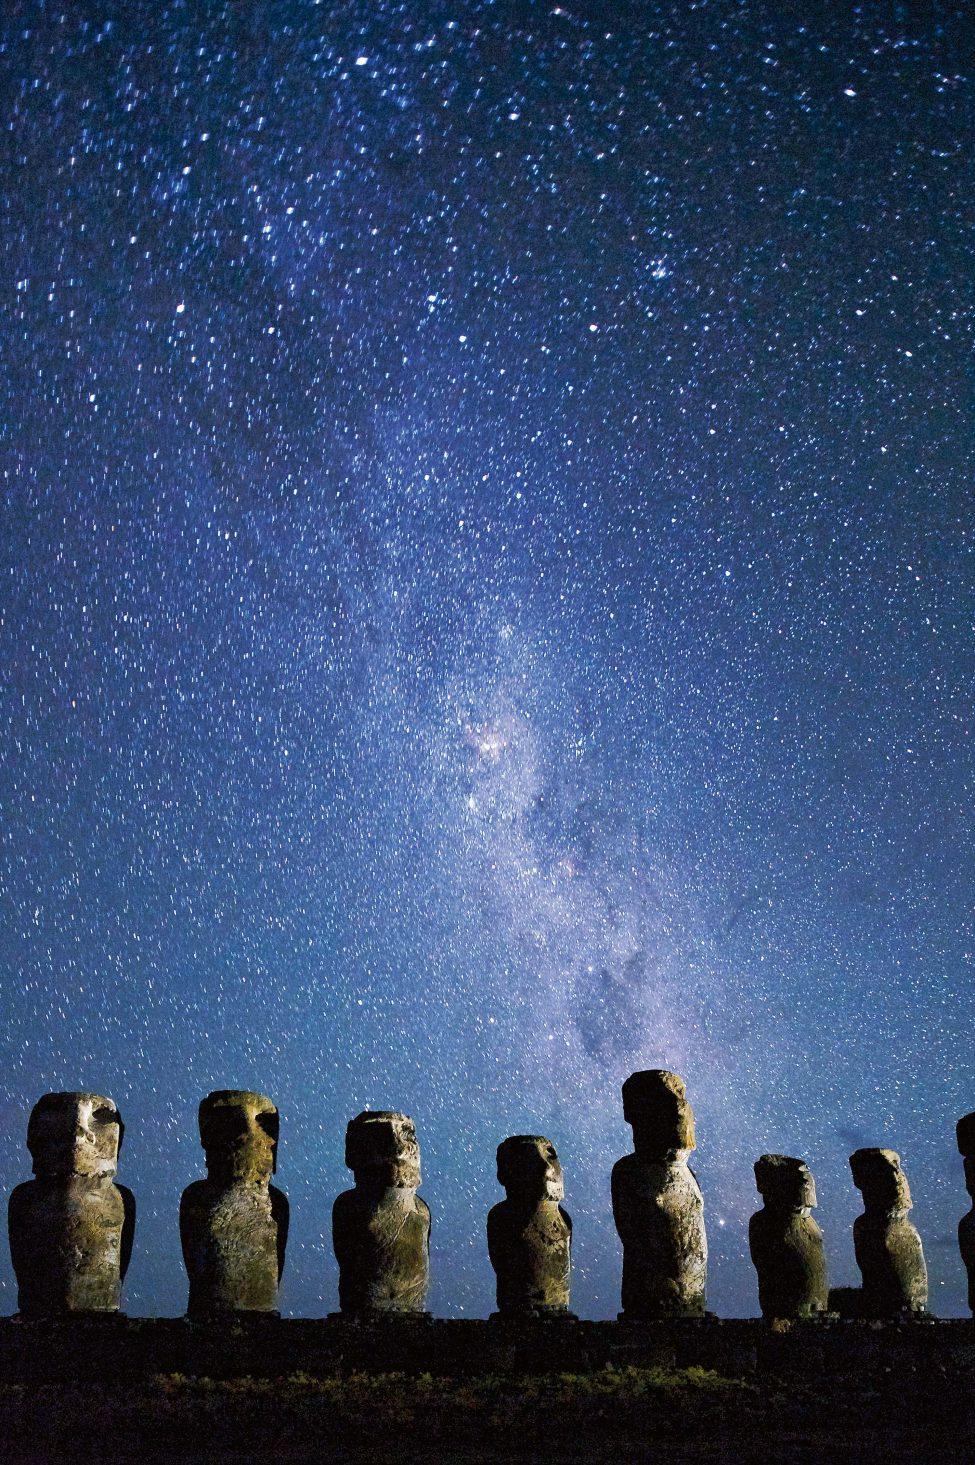 The ancient Polynesian mariners who first colonised Rapa Nui were celestial navigators, forging a route across the Pacific guided by the stars that light the night skies. Today, international flights and modern seafaring make Rapa Nui infinitely more reachable, but the region remains a challenging place for scientists to work in.<br /> Photo by Jim Richardson | National Geographic Creative